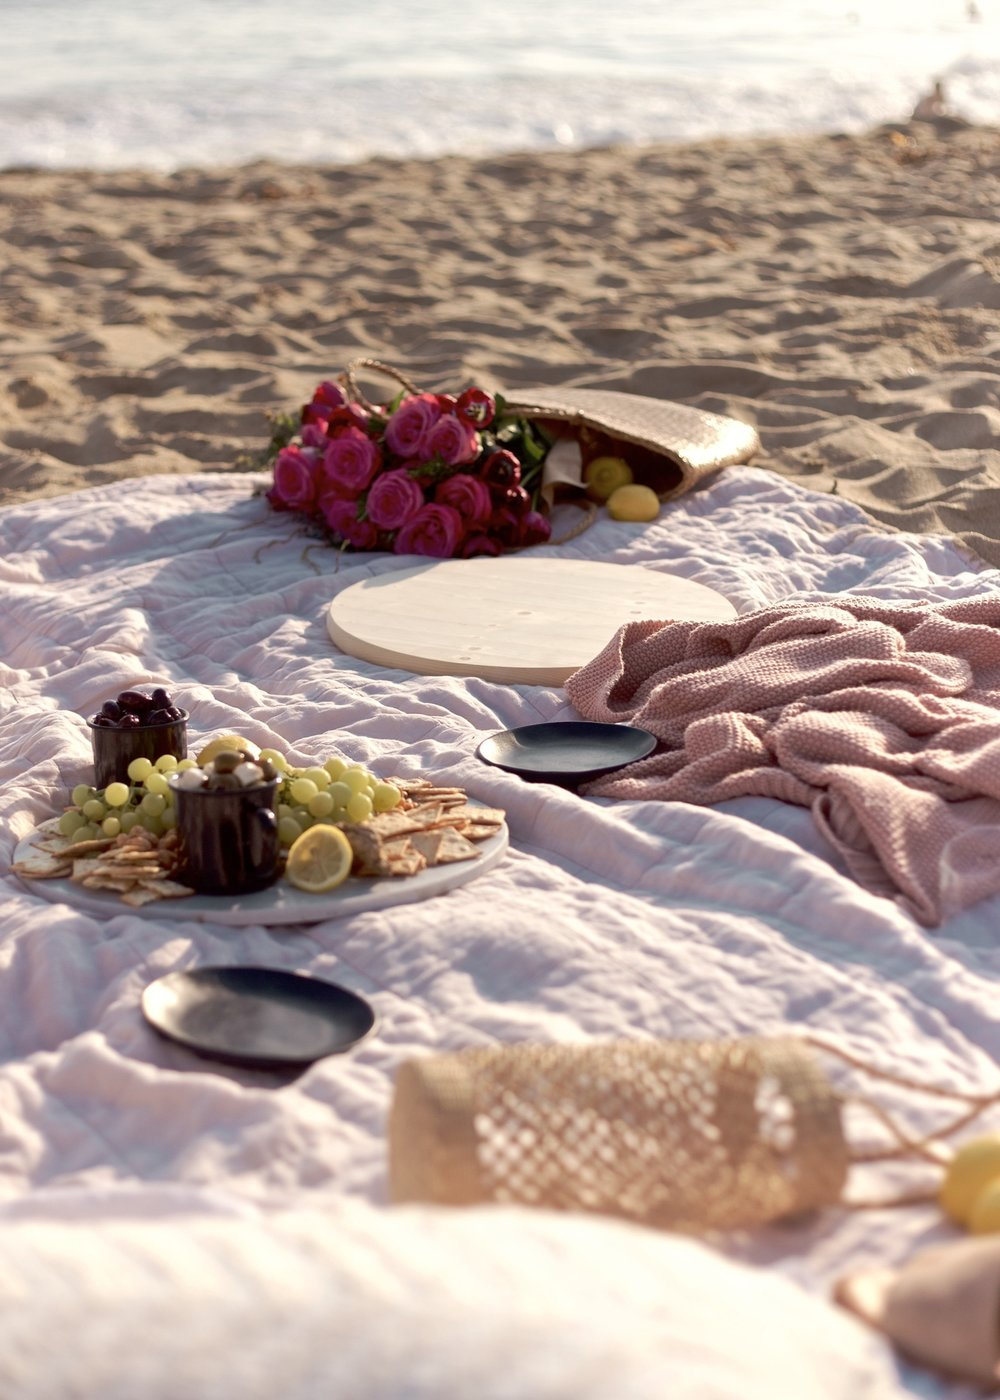 How to easily set up a beach picnic | A Fabulous Fete